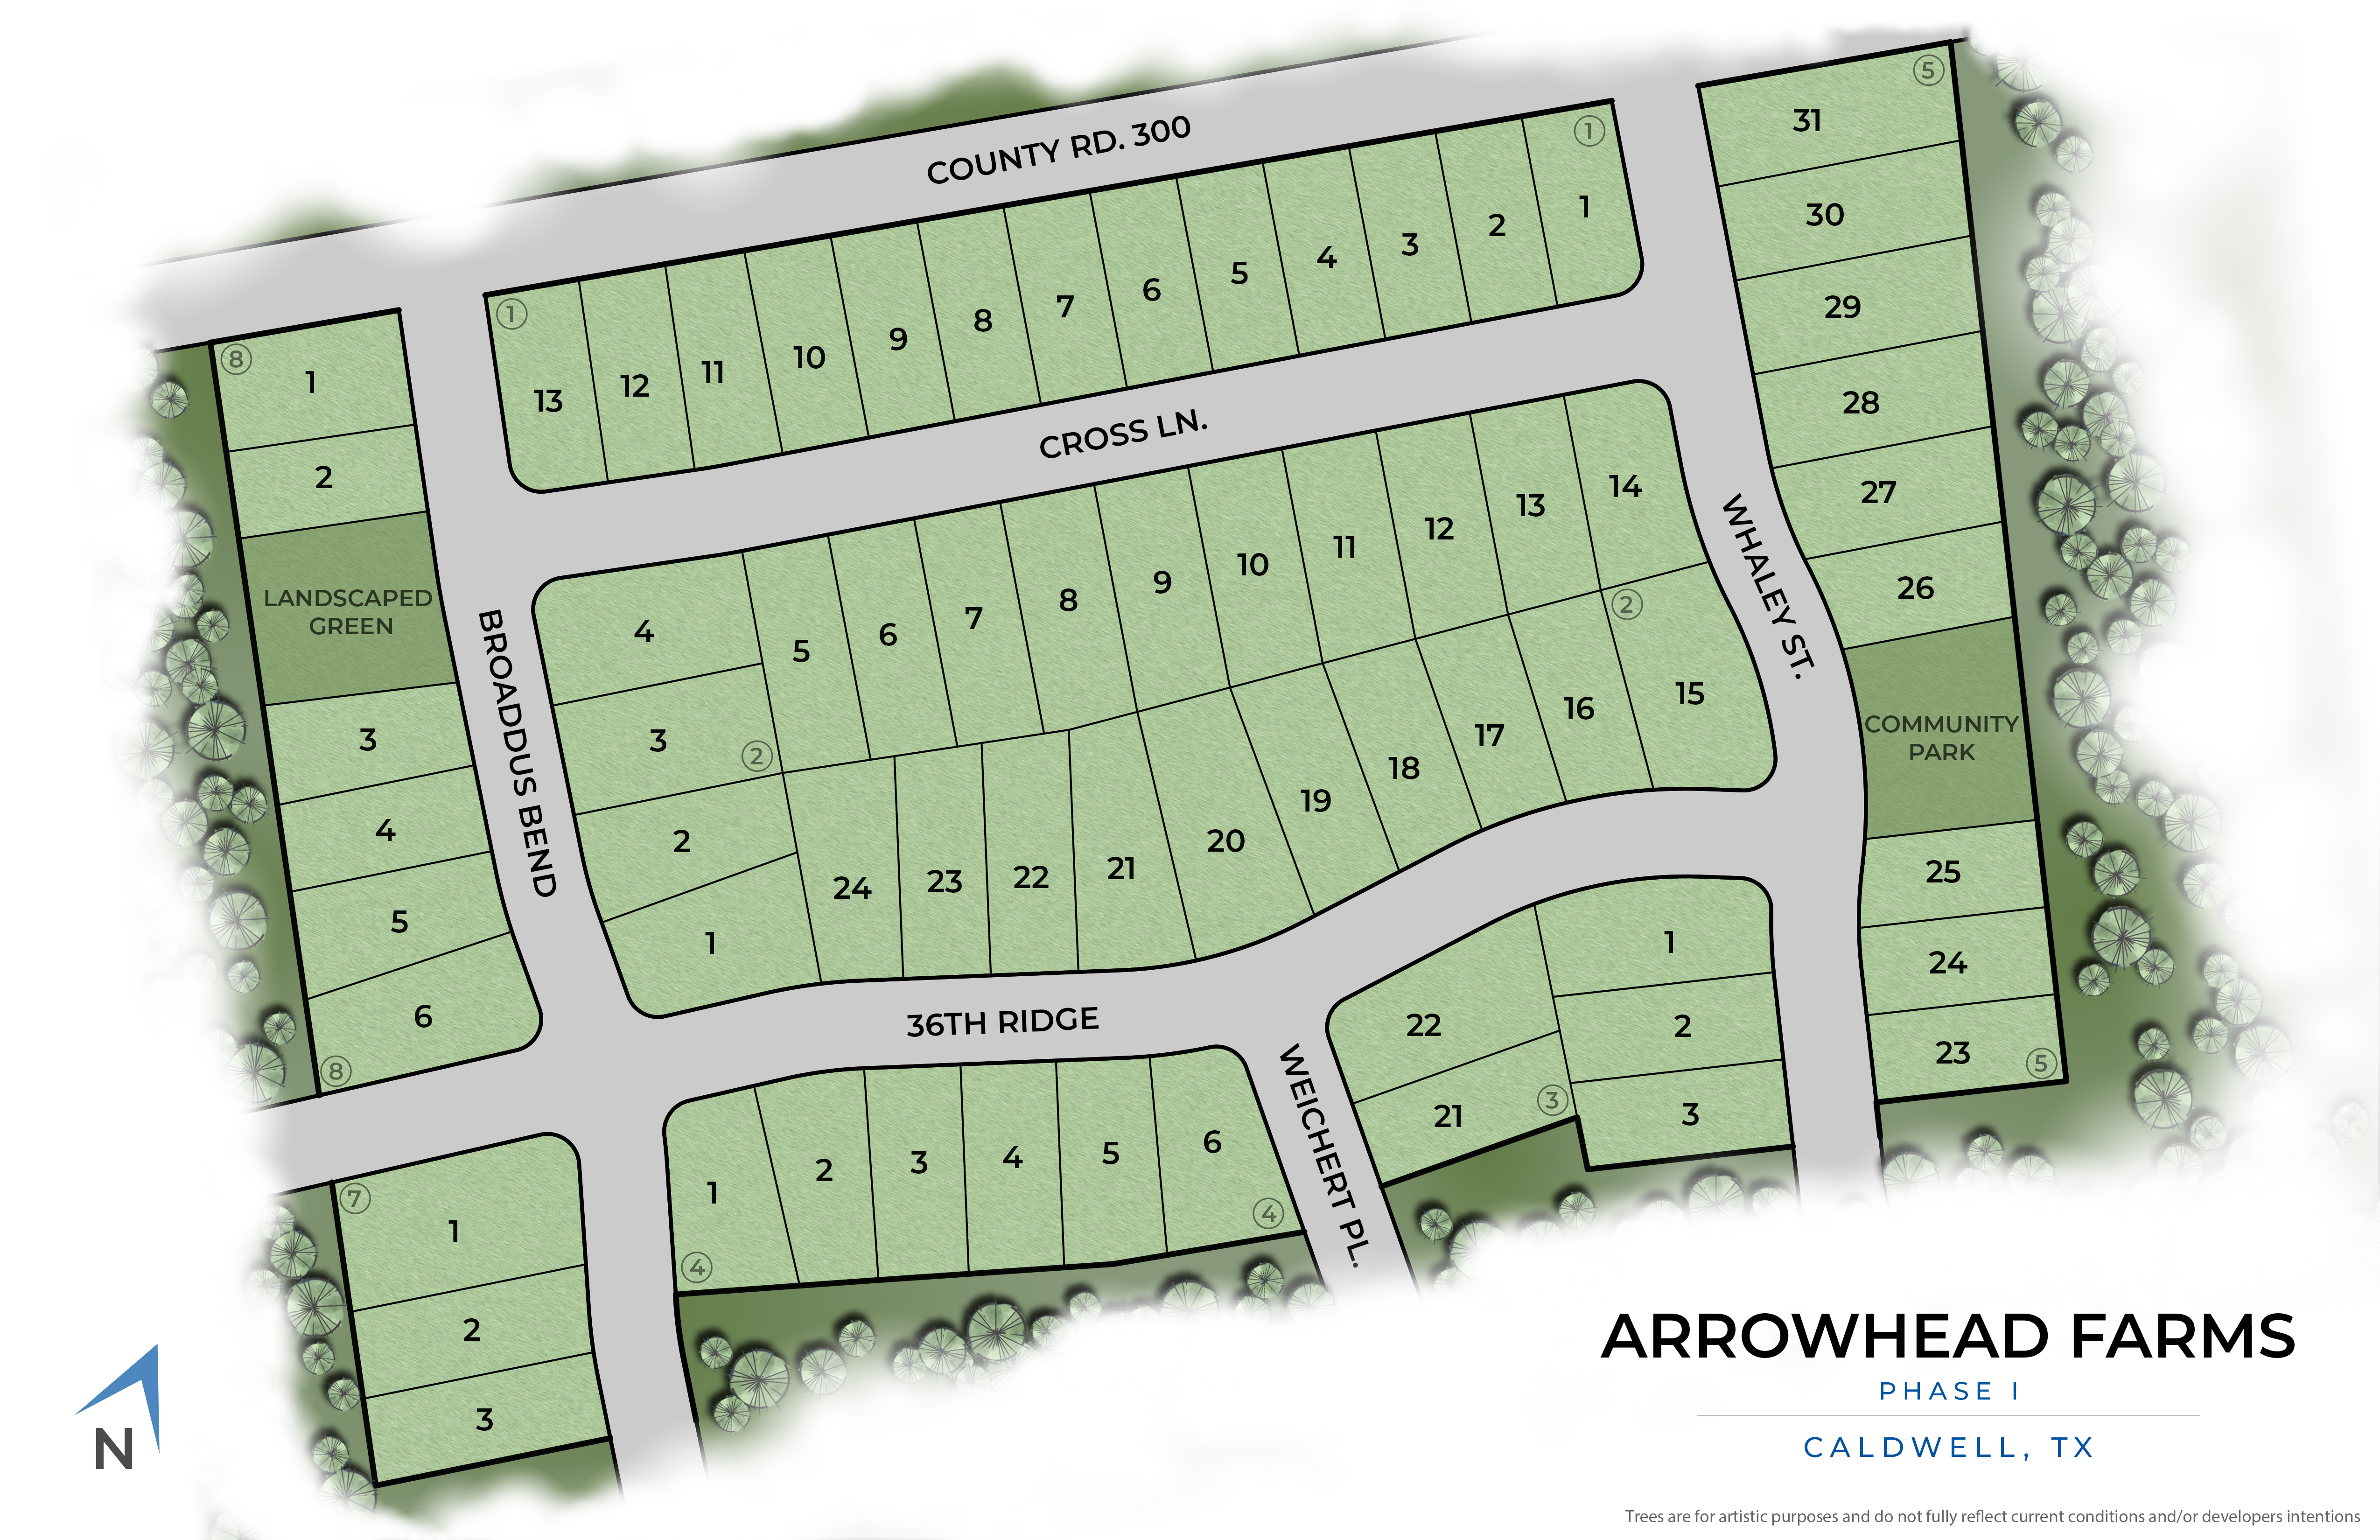 Caldwell , TX Arrowhead Farms New Homes from Stylecraft Builders